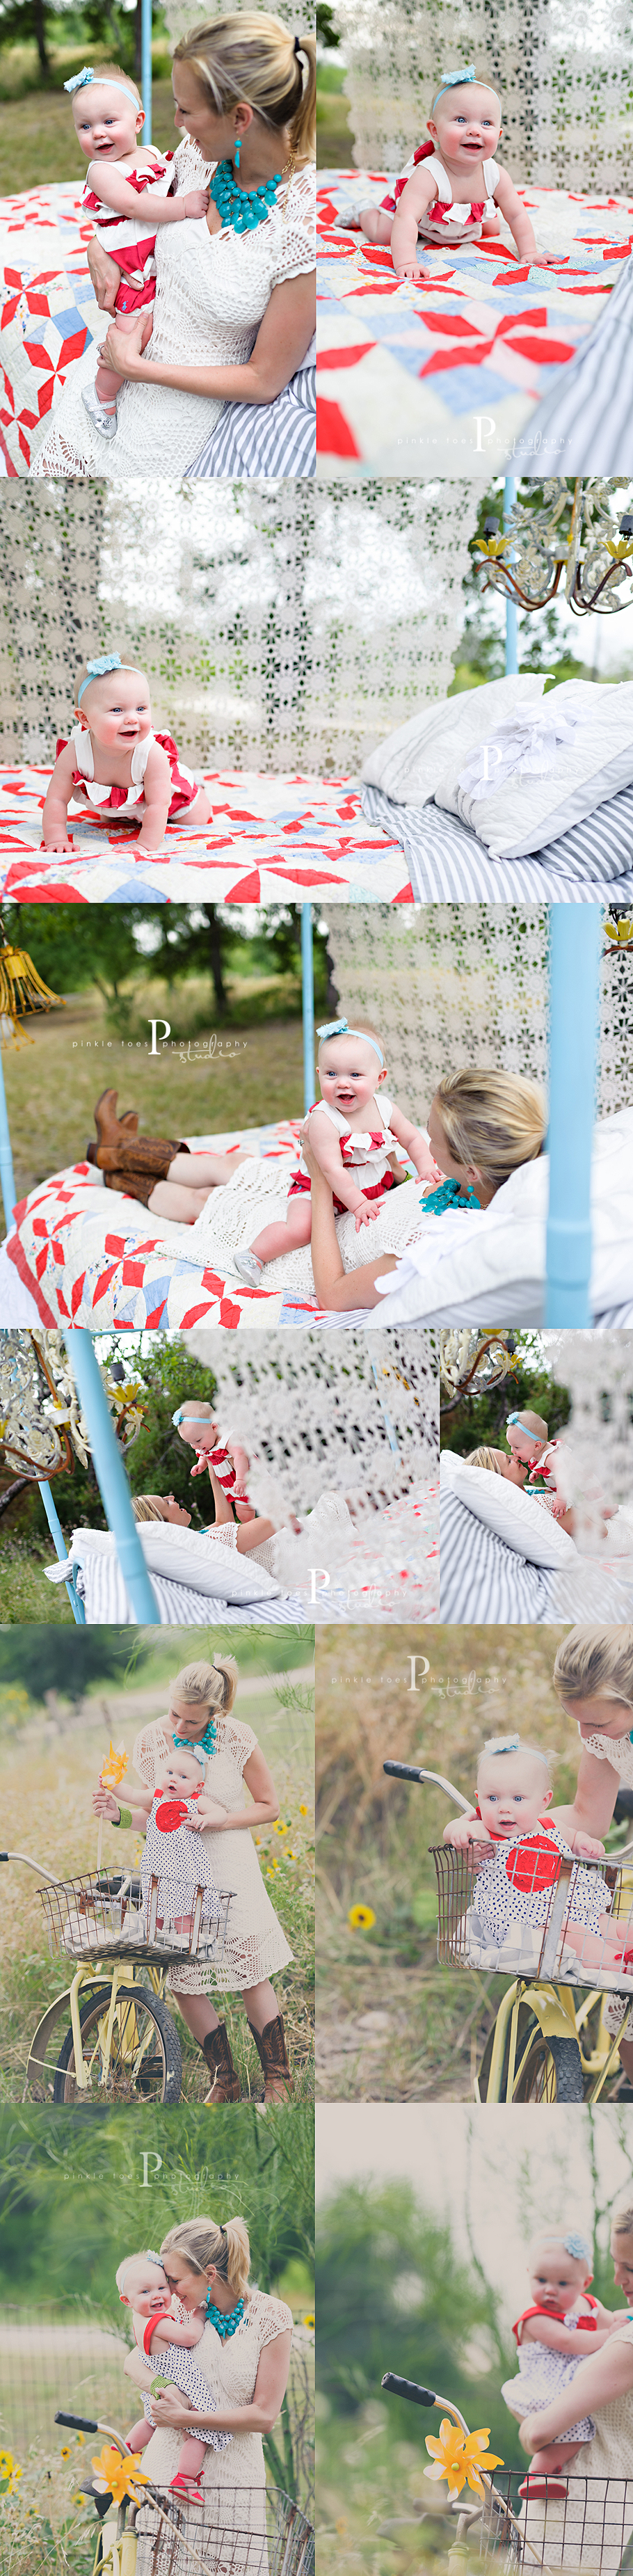 6mos-austin-modern-fresh-fun-baby-photography.jpg